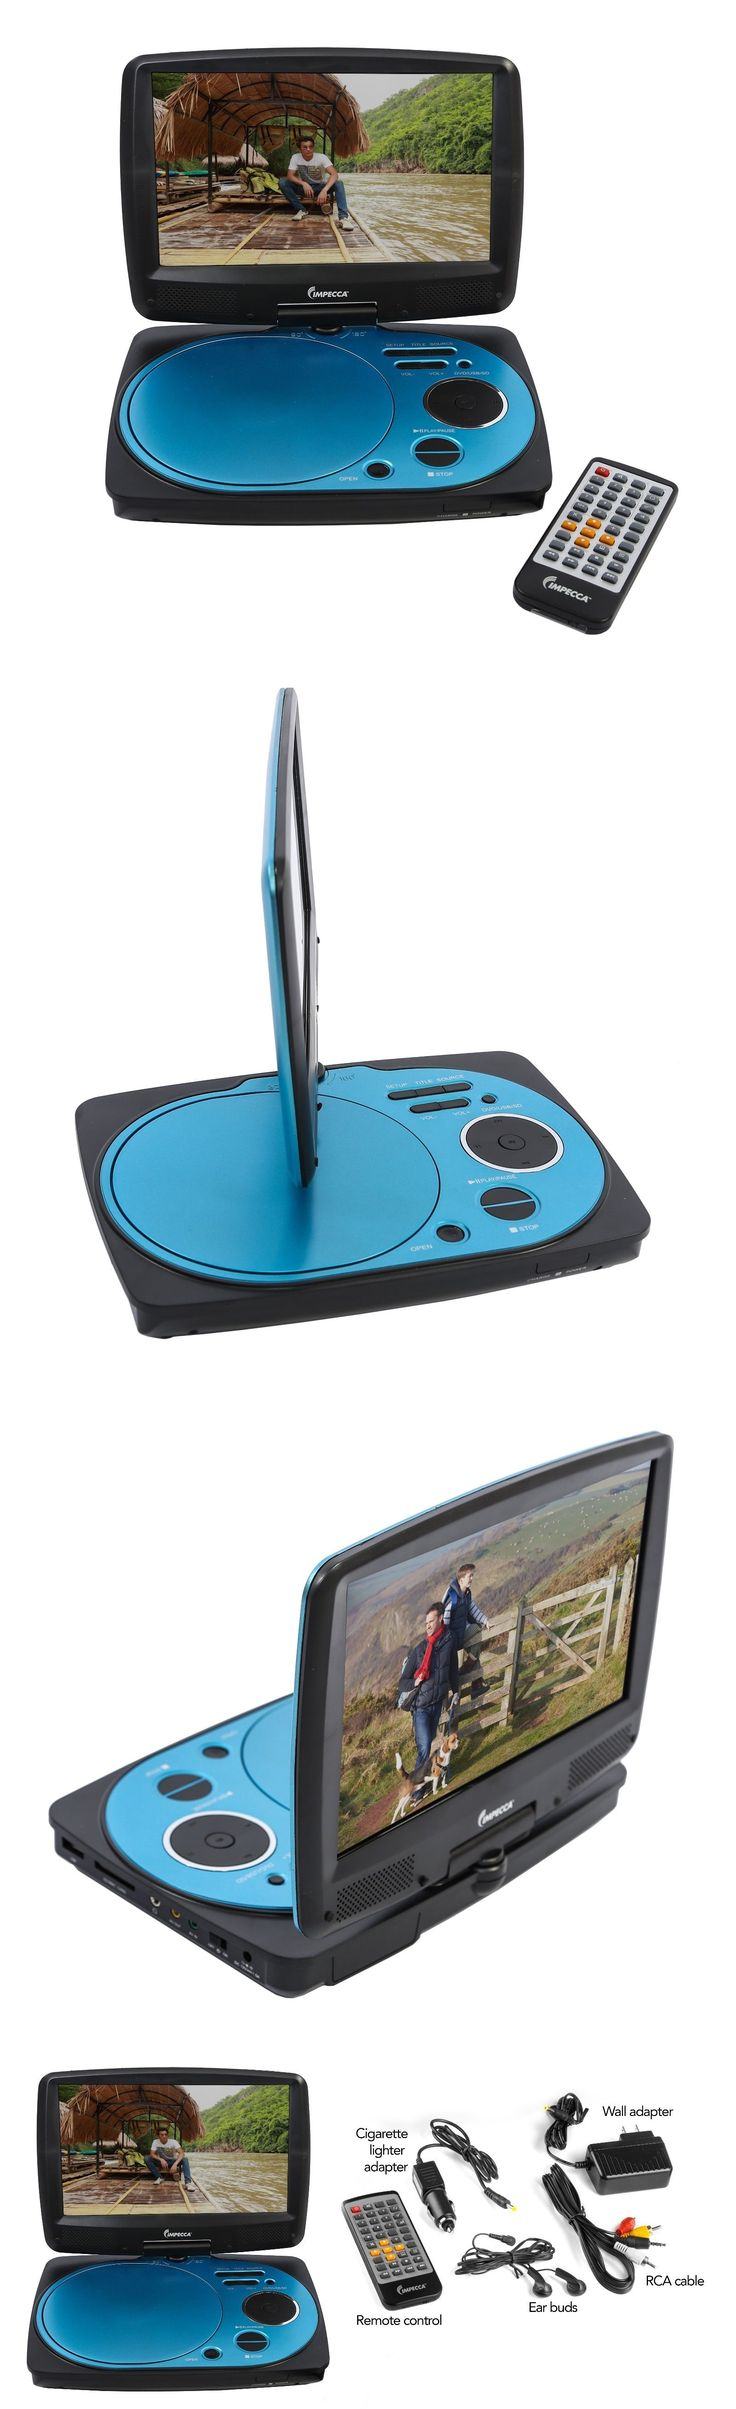 DVD and Blu-ray Players: Impecca 9 Inch Swivel Portable Dvd Player, Blue BUY IT NOW ONLY: $59.99